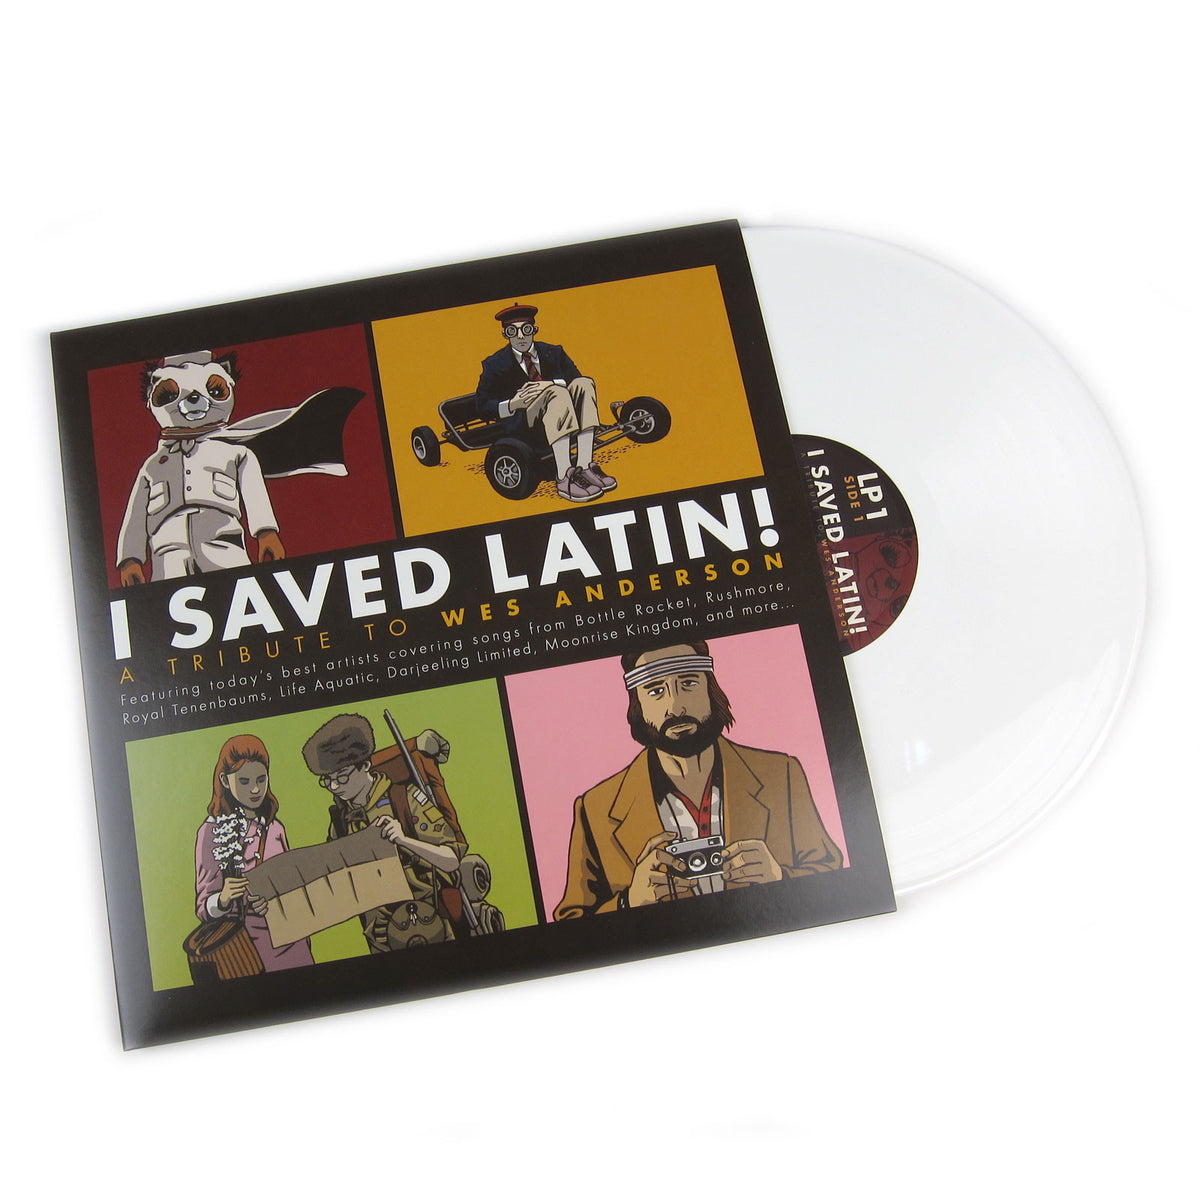 American Laundromat Records: I Saved Latin! - A Tribute To Wes Anderson (Colored Vinyl) Vinyl 2LP